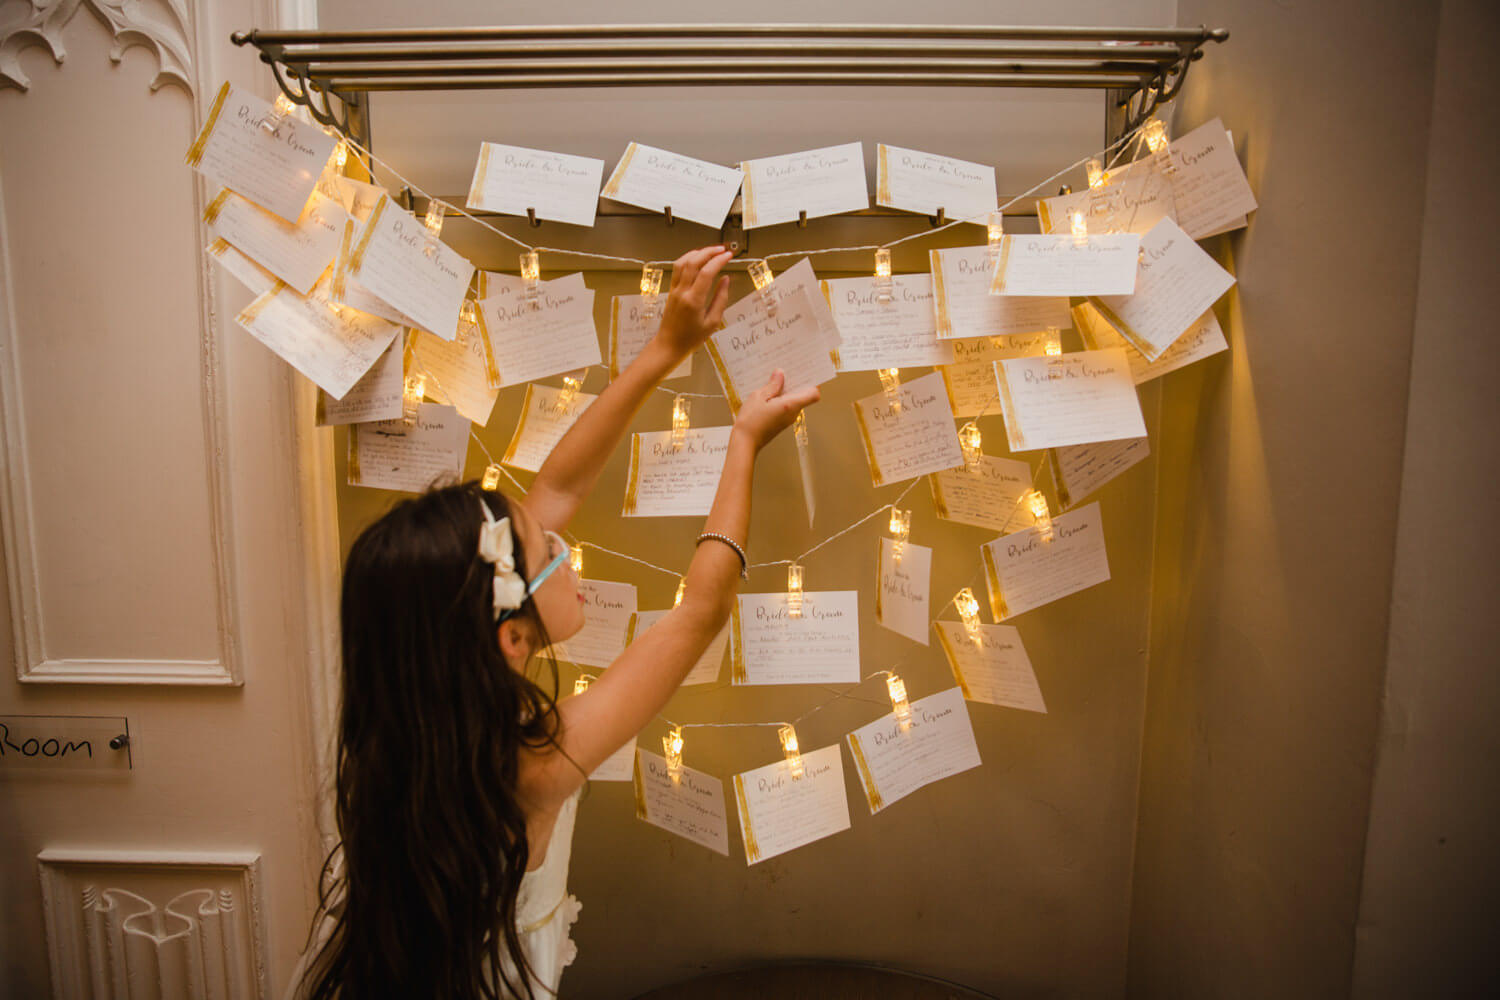 flower girl pinning wedding invitation to string in hallway